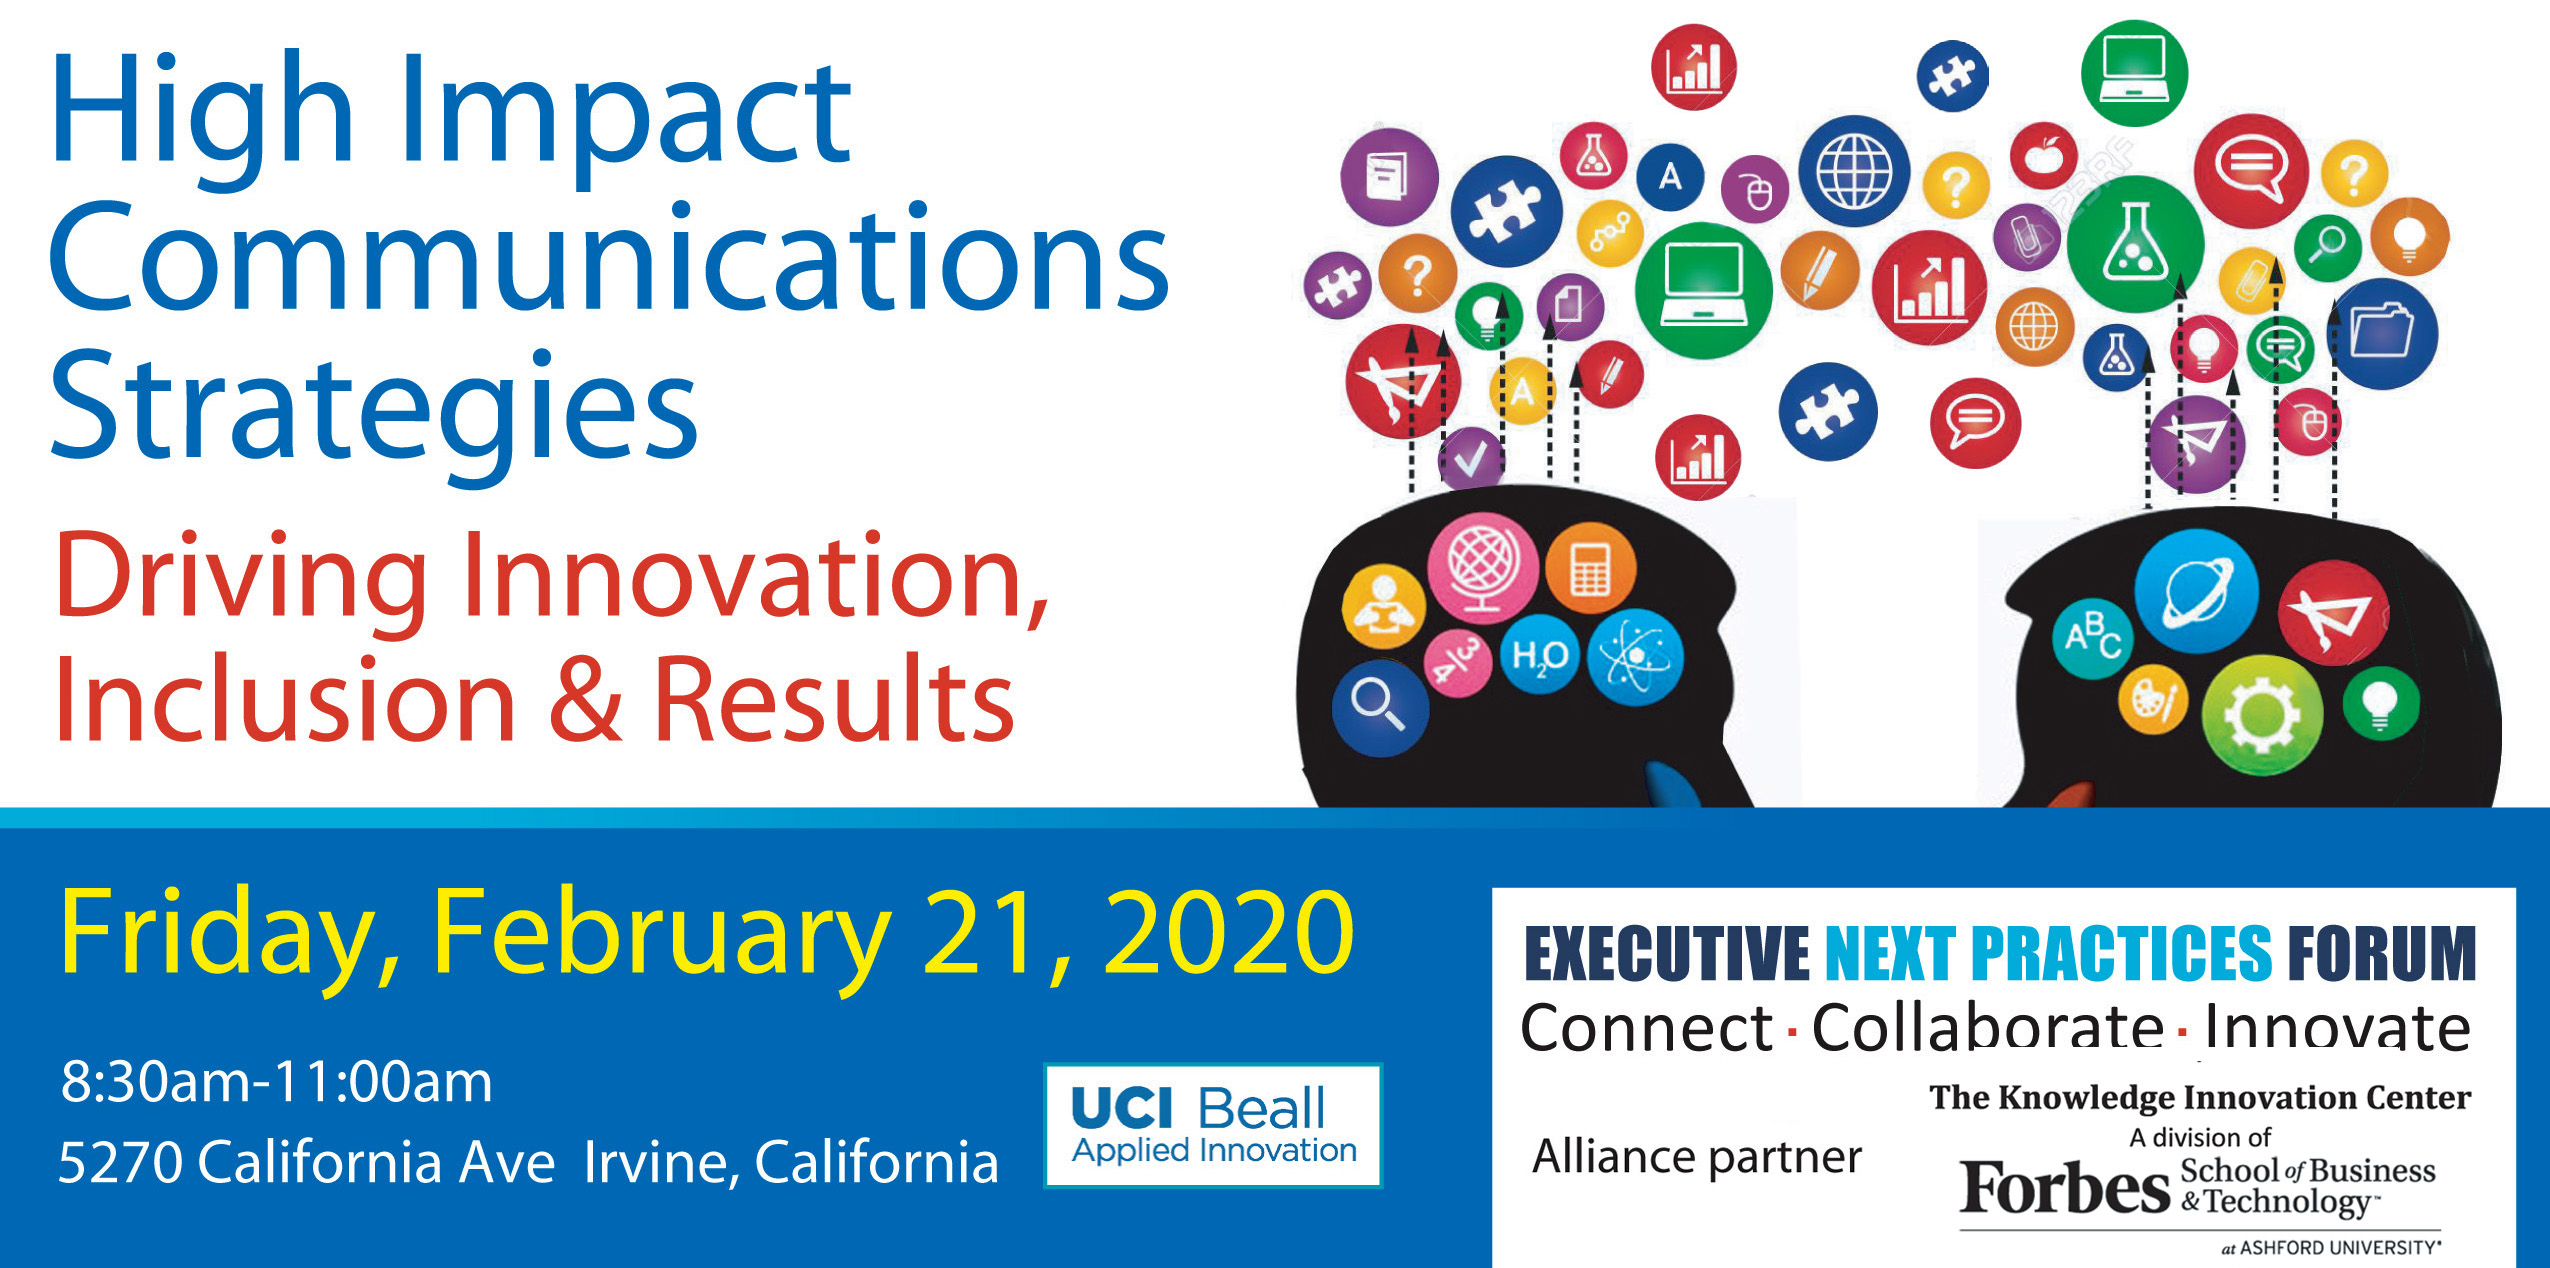 ENP Institute: High Impact Communications Strategies: Driving Innovation, Inclusion & Results